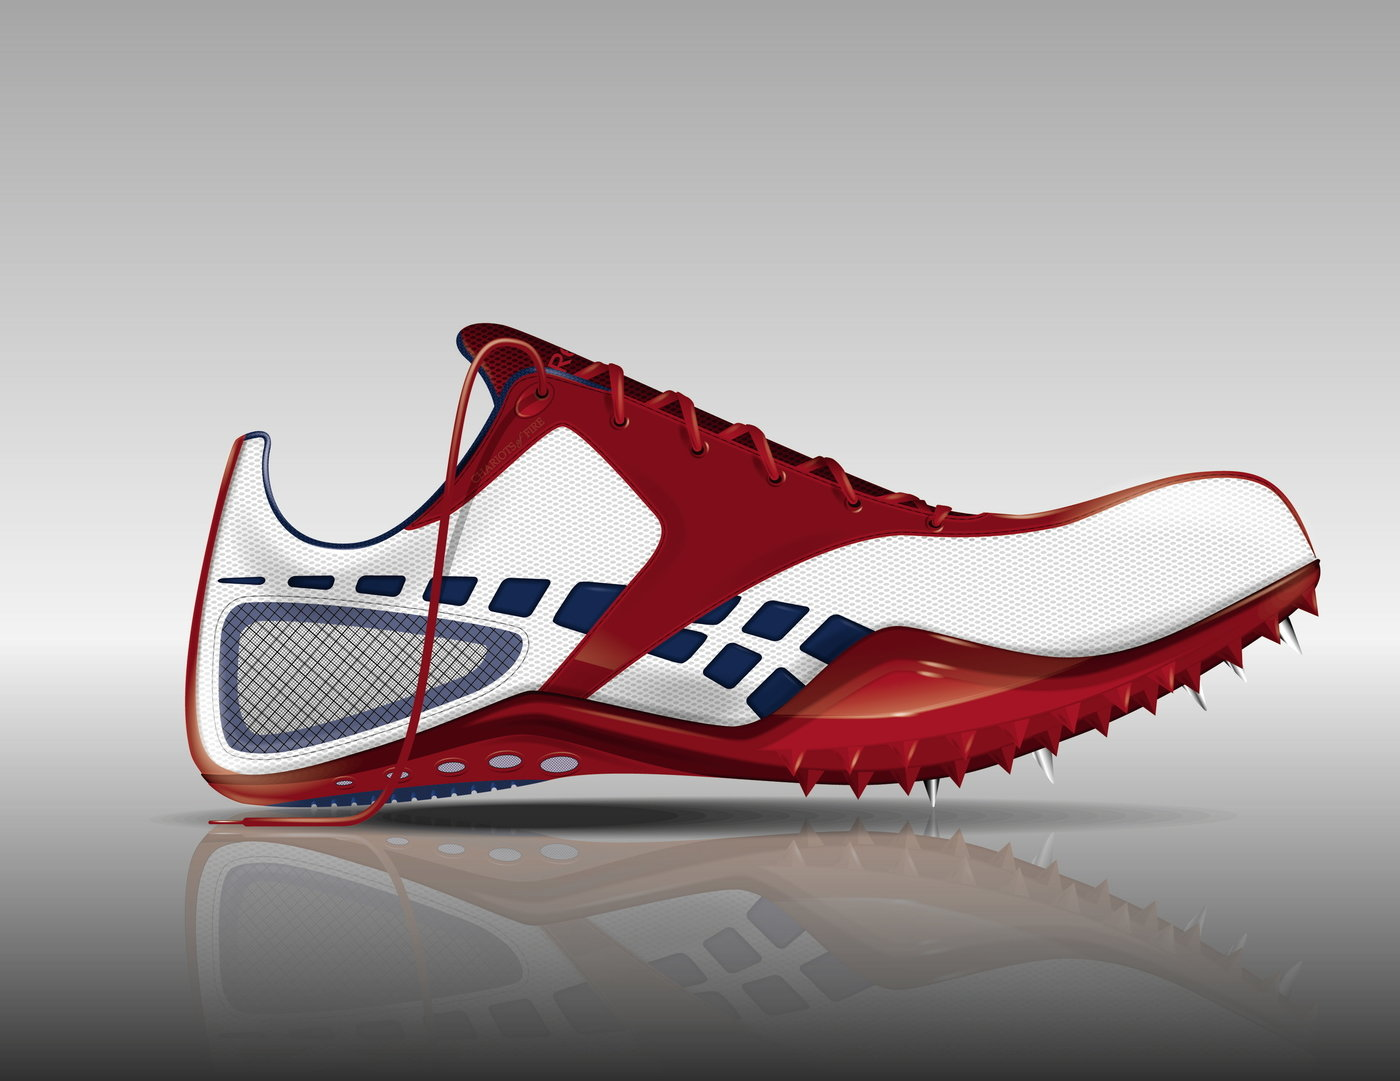 aterrizaje cilindro bueno  reebok spikes Online Shopping for Women, Men, Kids Fashion & Lifestyle|Free  Delivery & Returns! -